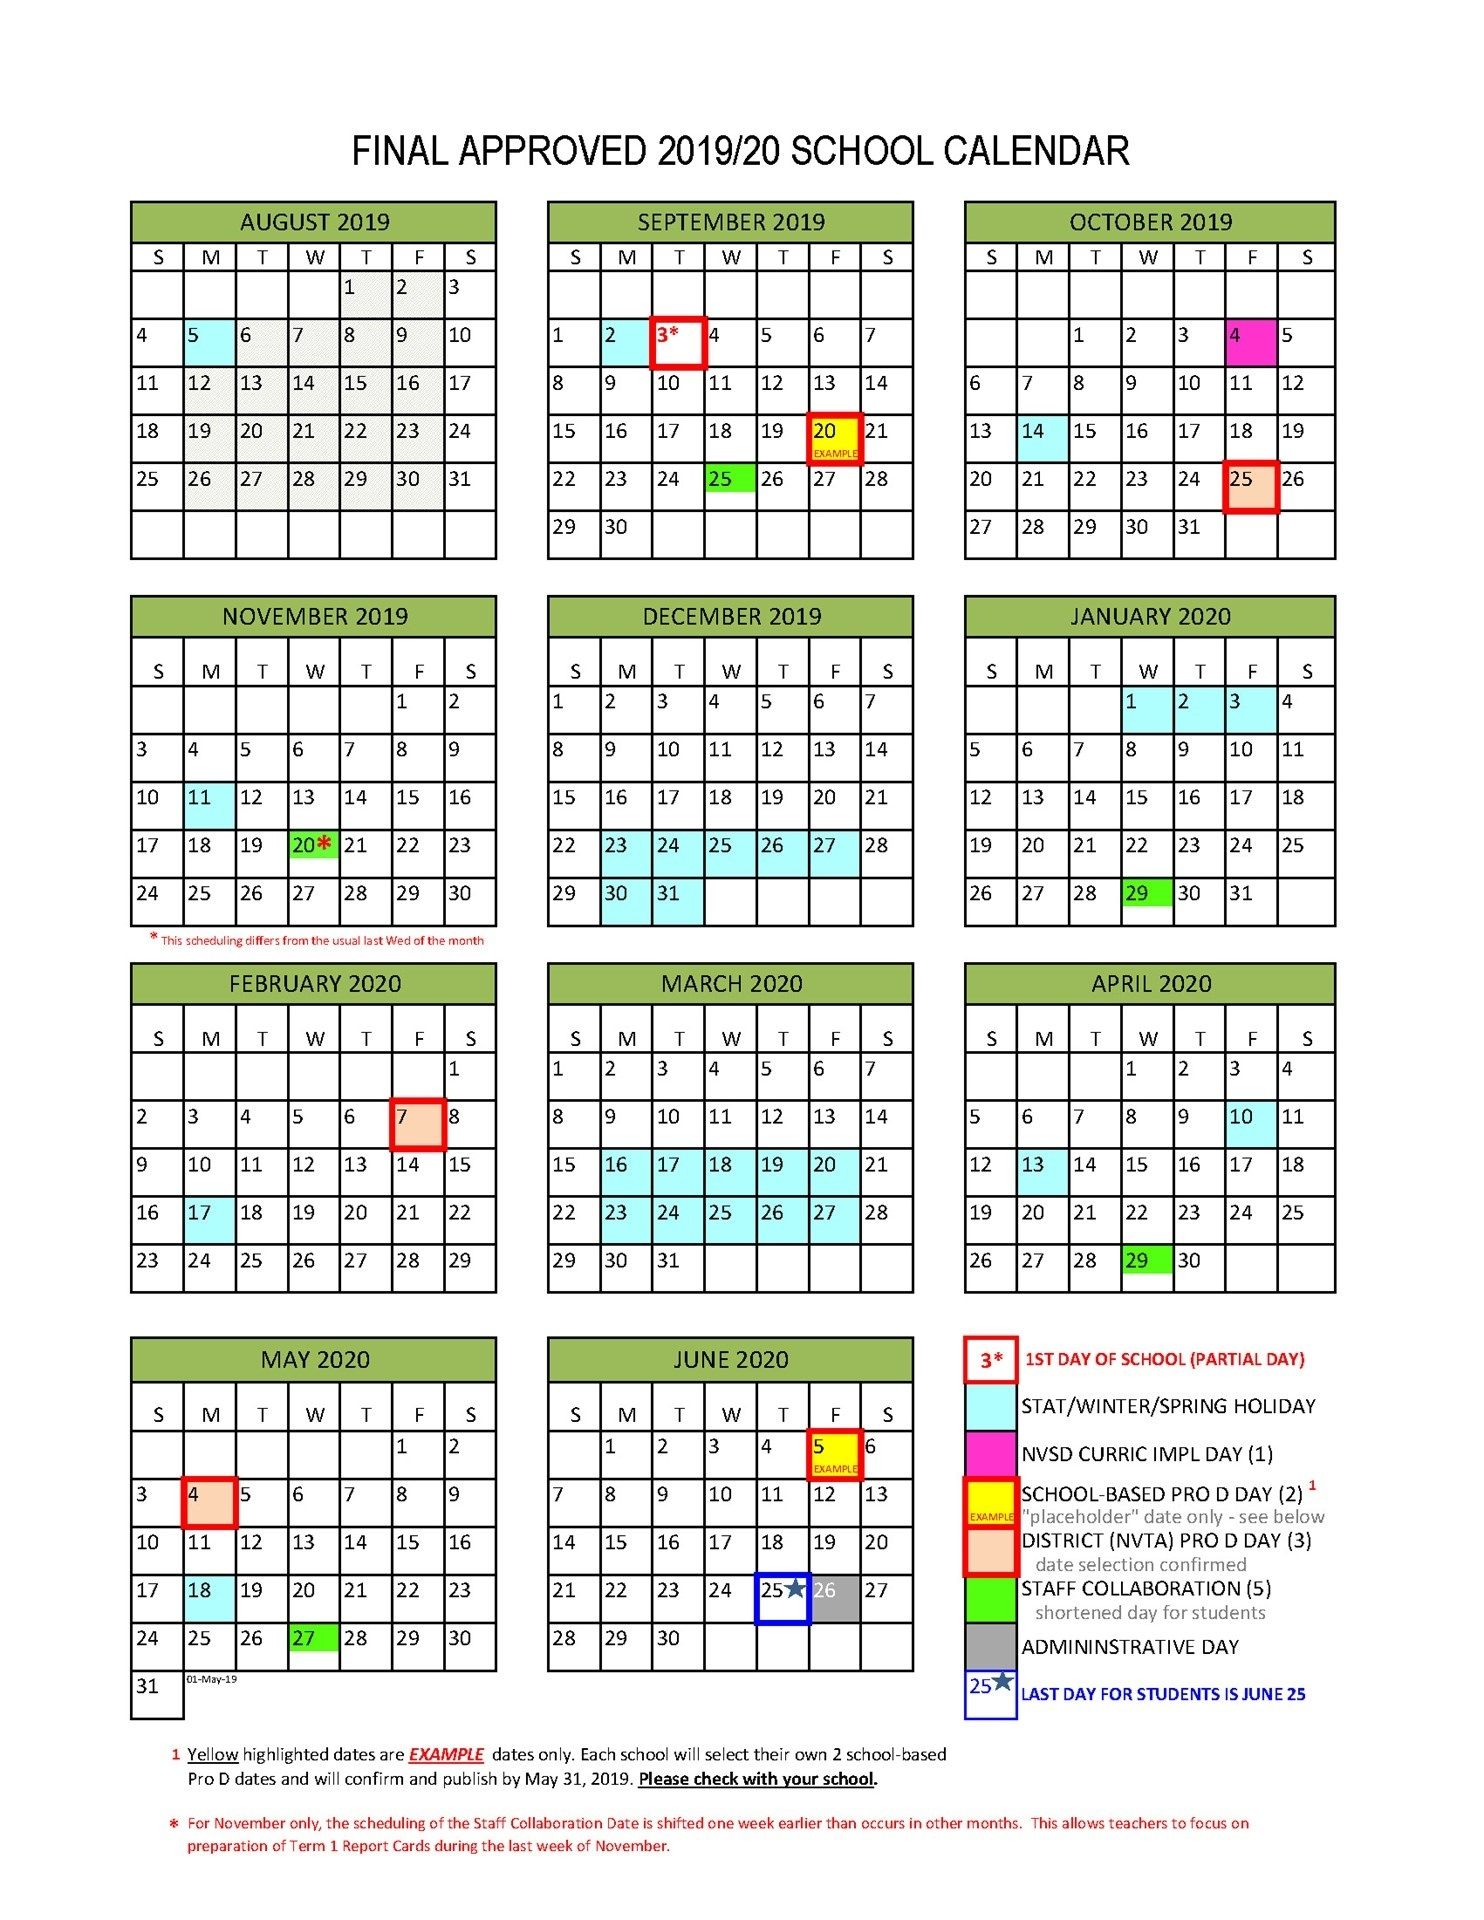 District Calendar - North Vancouver School District_U Of K School Calendar